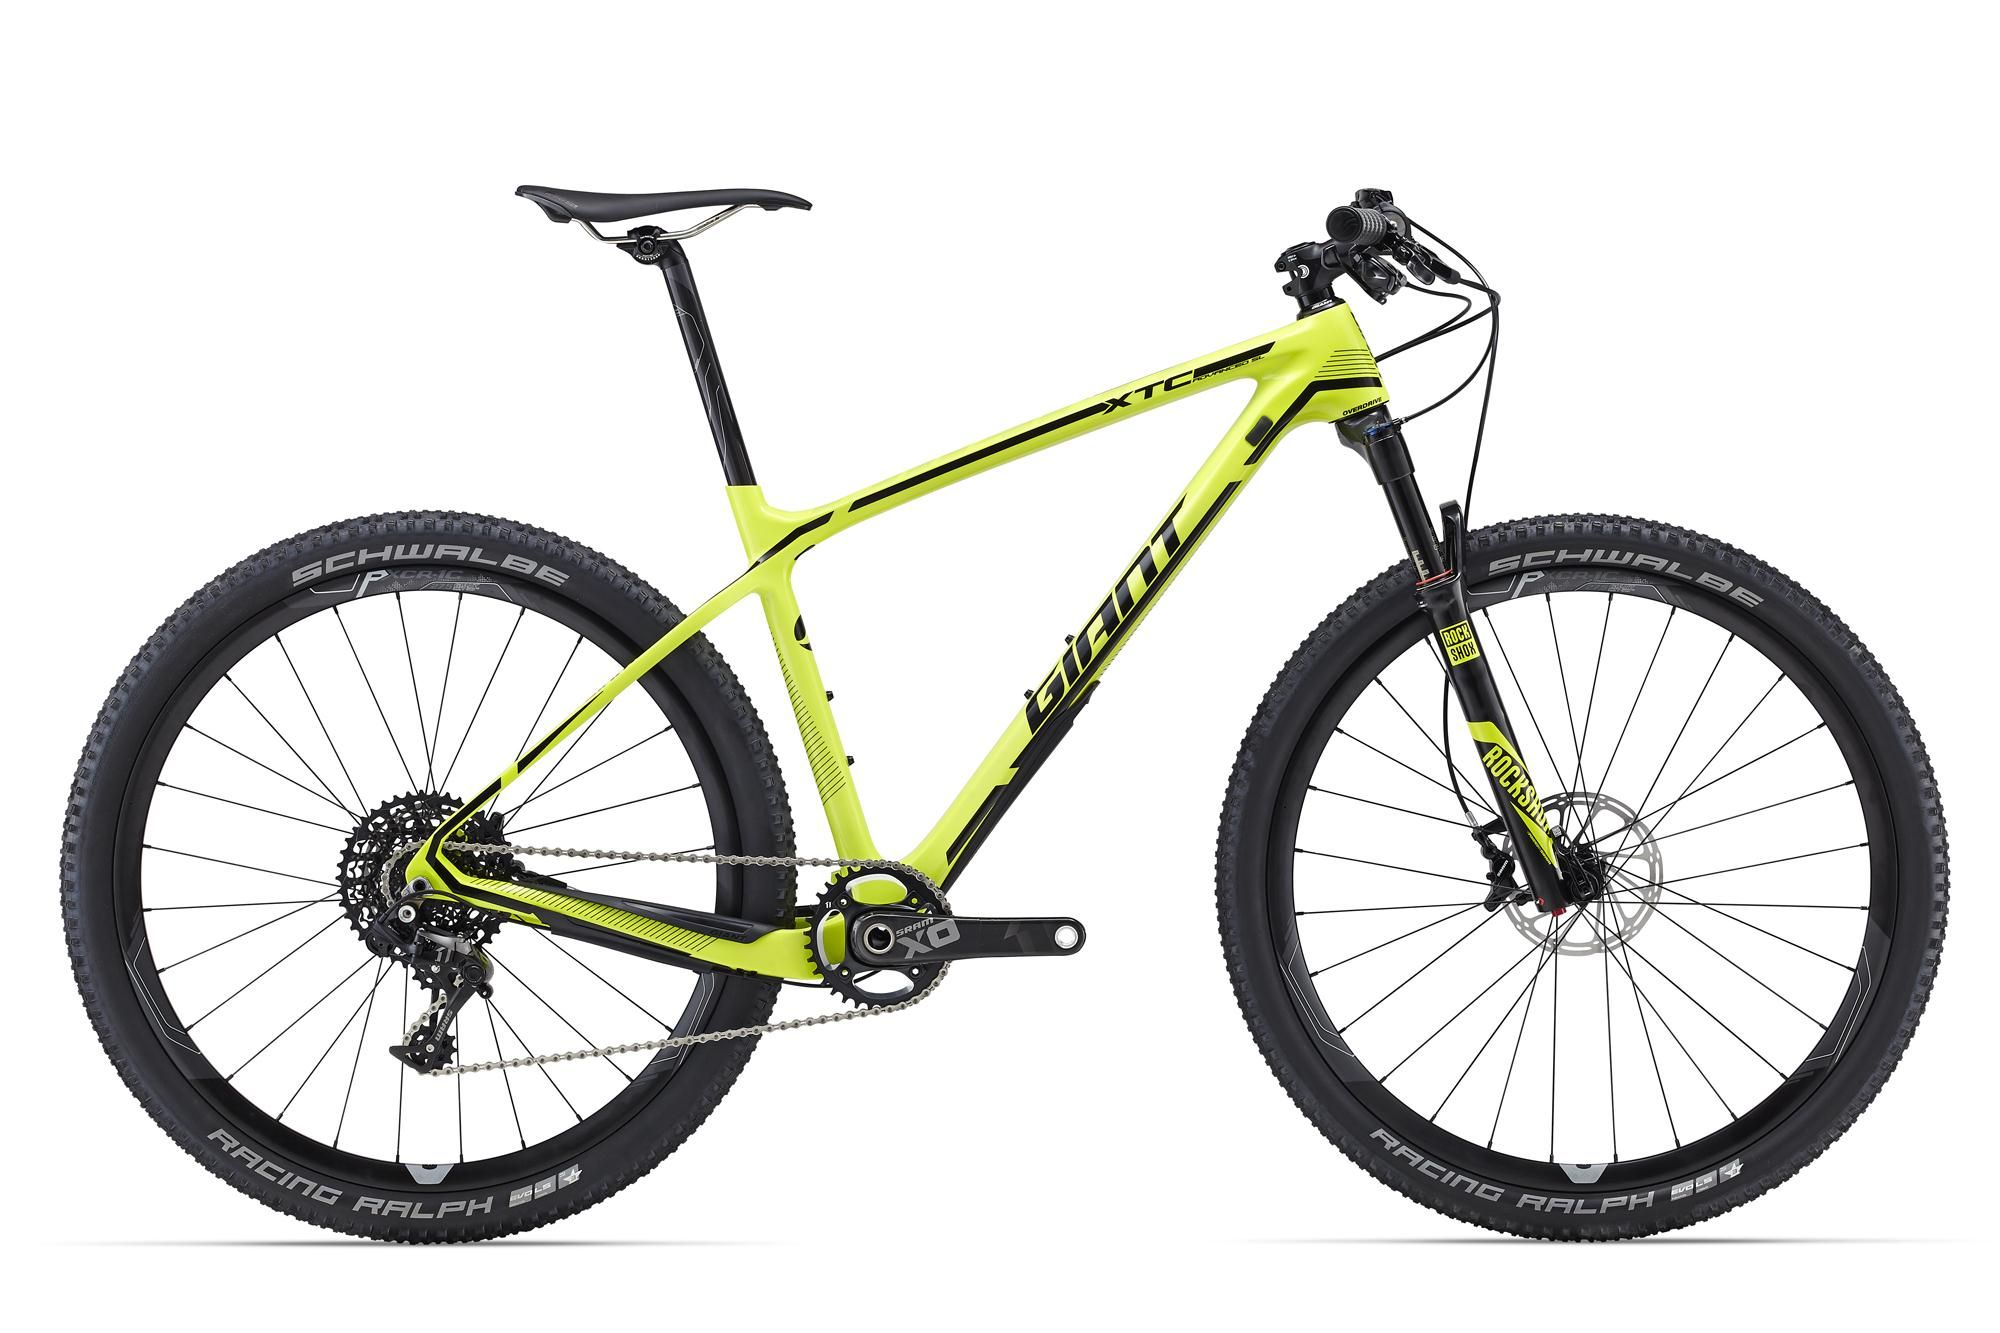 Велосипед Giant XtC Advanced SL 27.5 1 2016 giant xtc advanced 27 5 3 2016 comp yellow